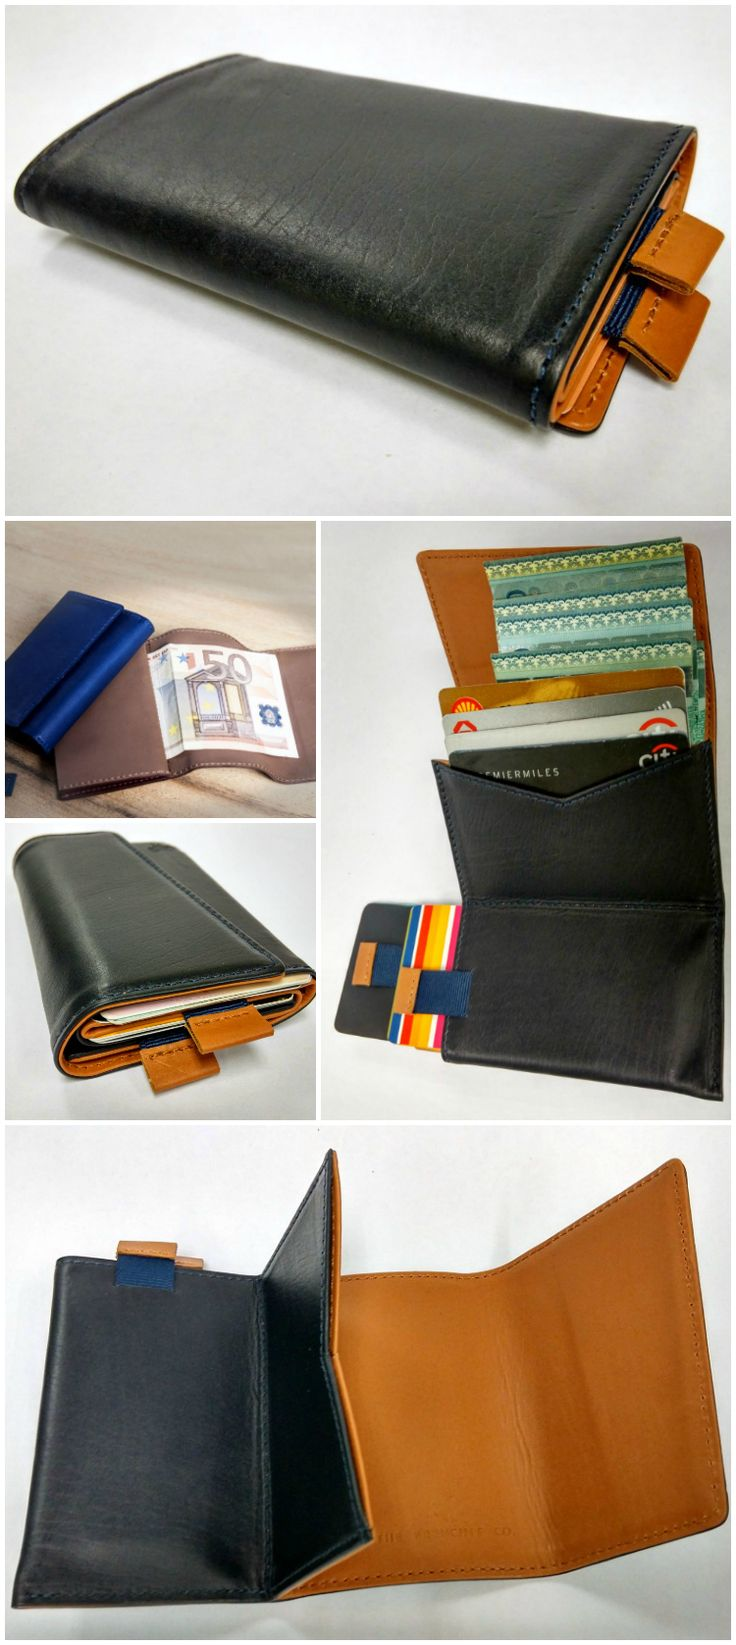 Leather Slimfold Wallet - War and Peace by VIDA VIDA 6KMXB